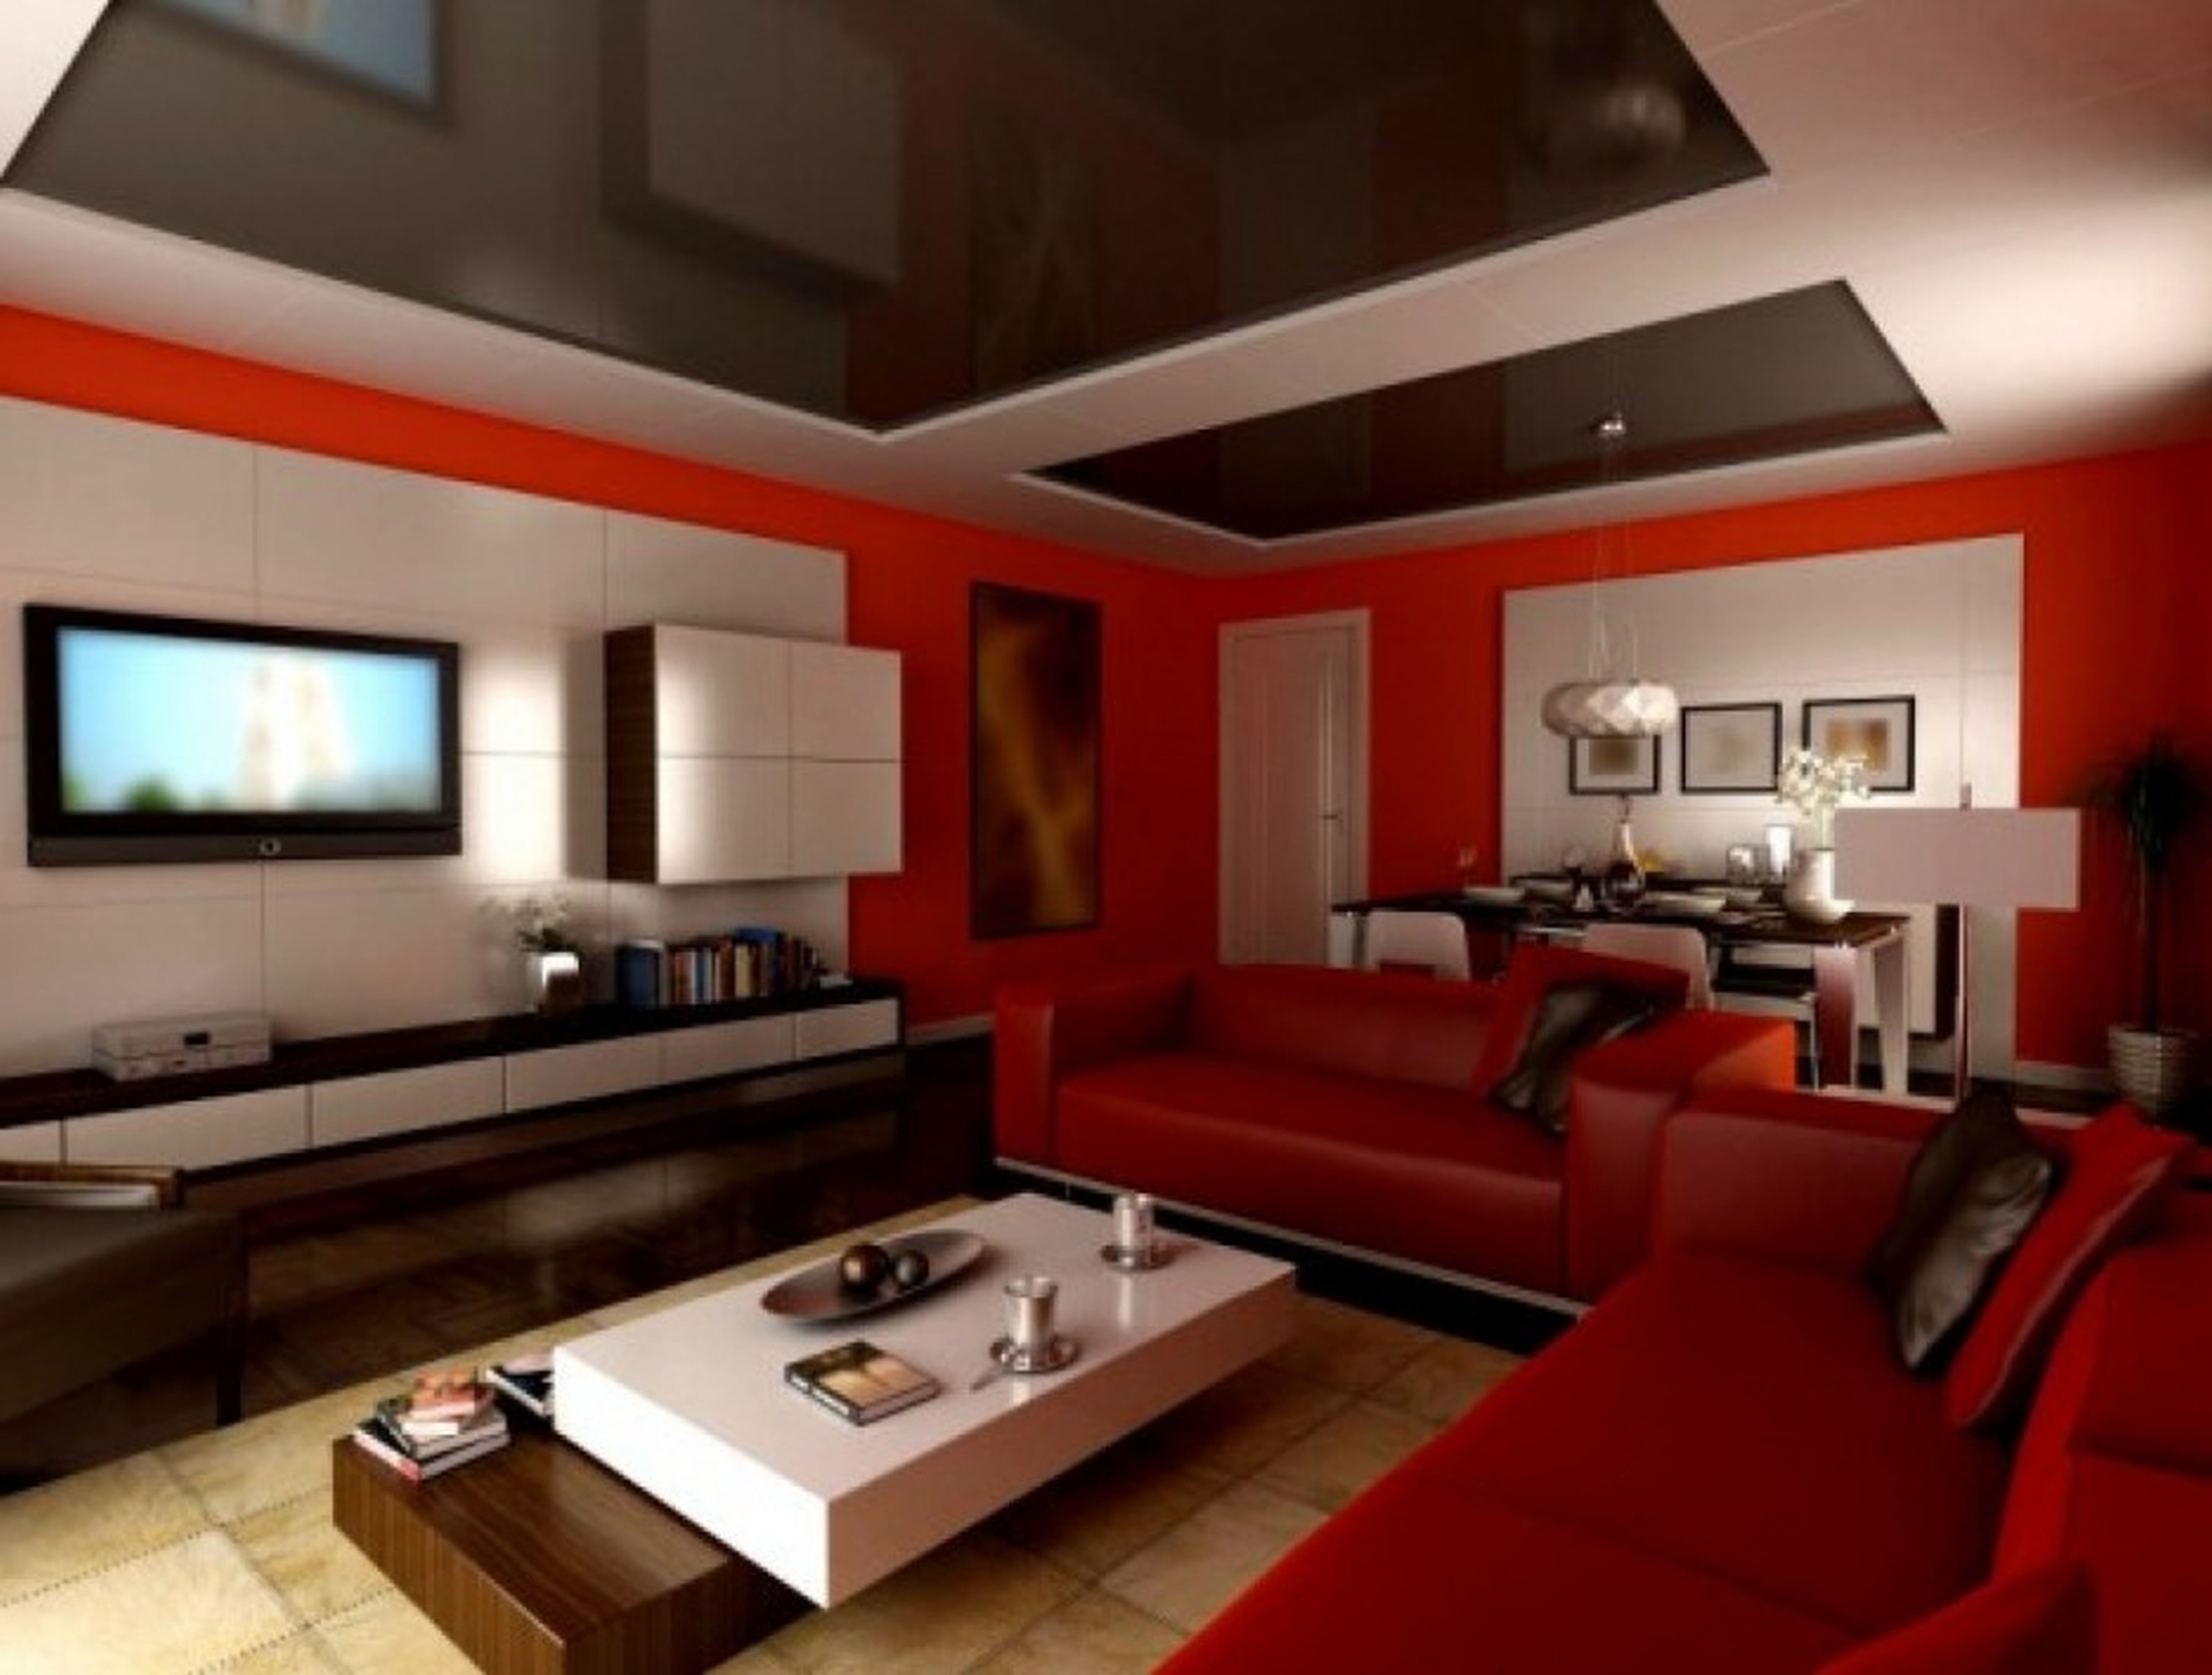 Living Room Color Red - Lavita Home